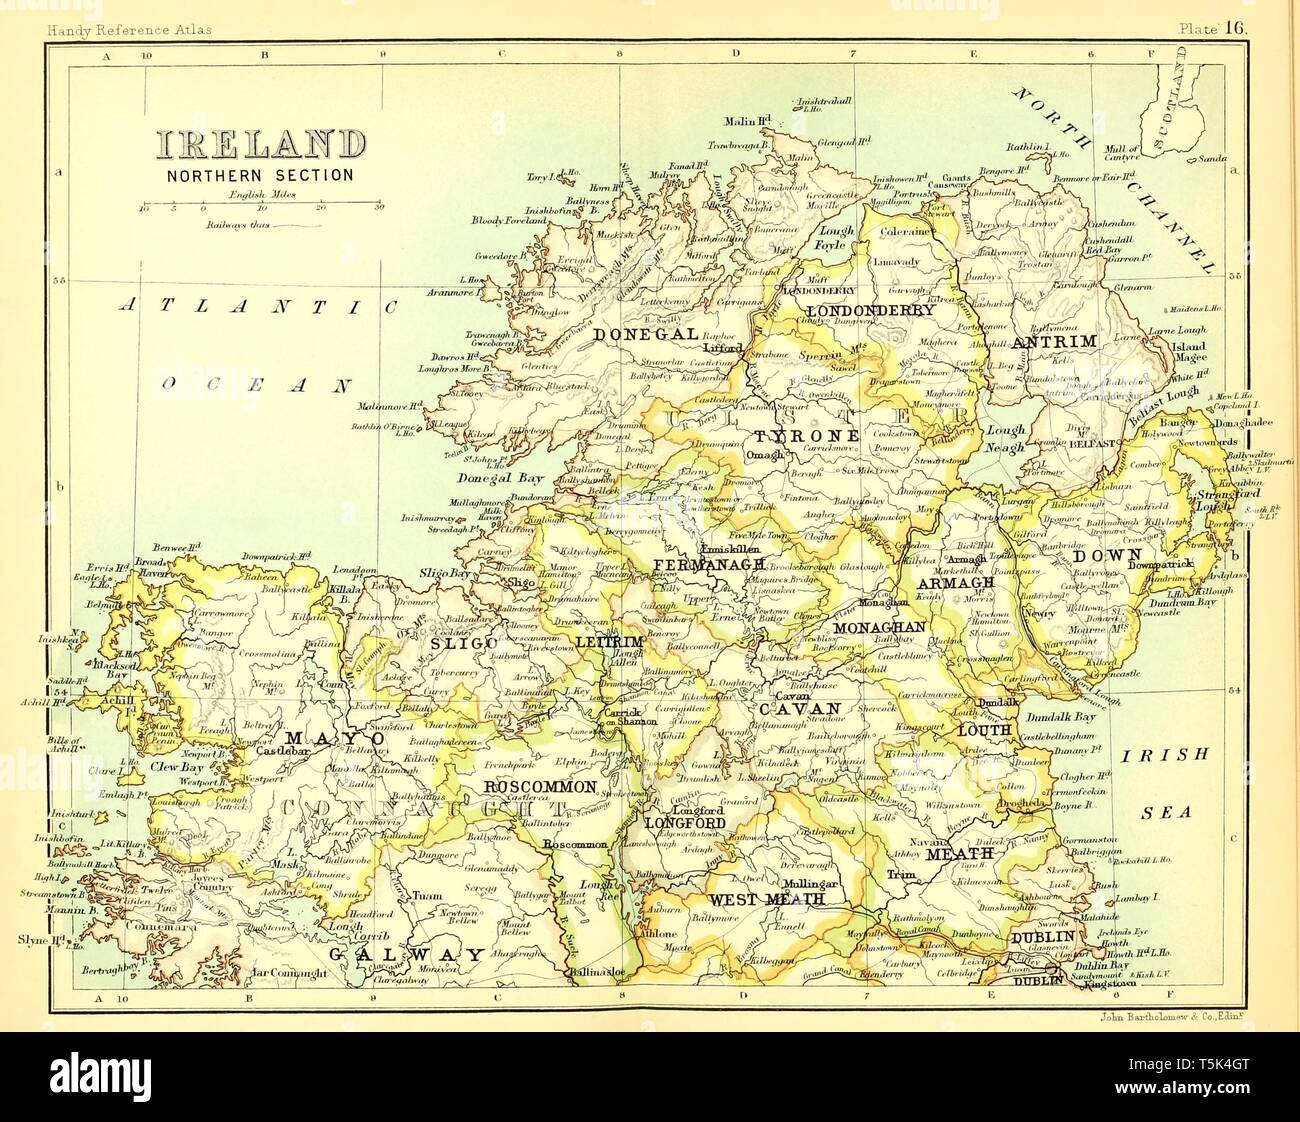 Map Of Ireland Book.Beautiful Vintage Hand Drawn Map Illustrations Of North Ireland From